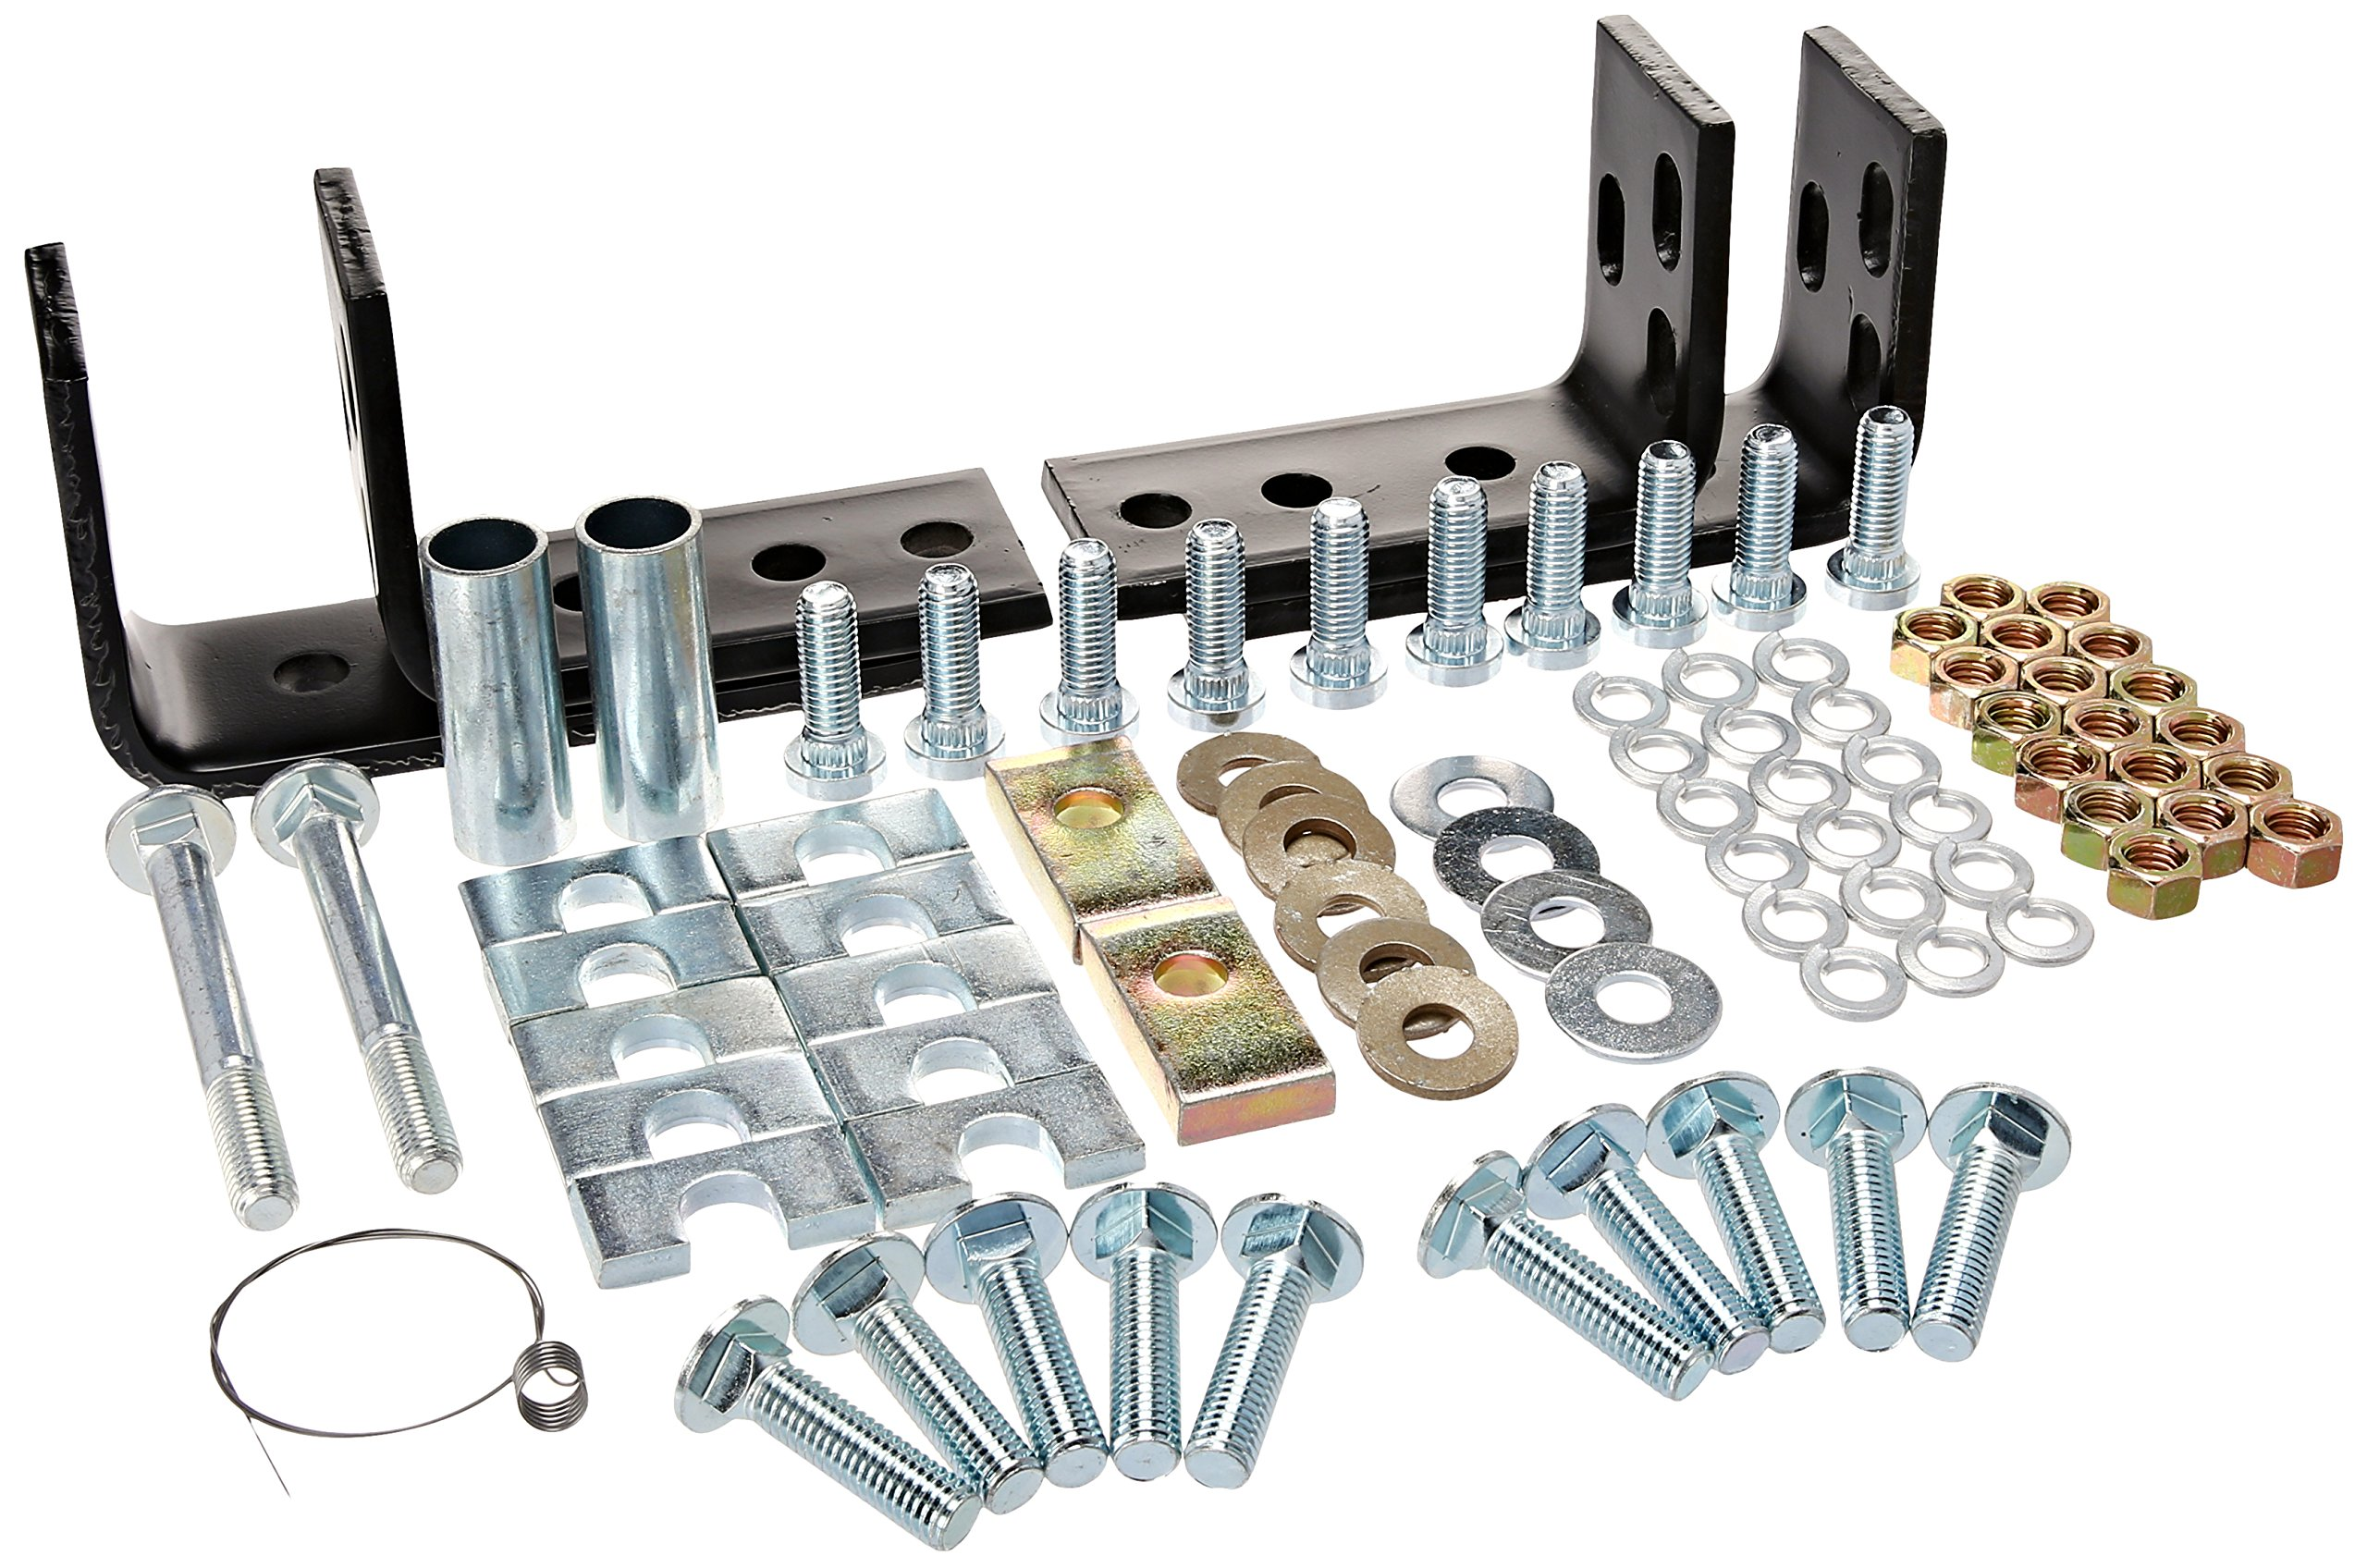 Reese 30439 Fifth Wheel Installation Kit for 30035 and 58058 (10-Bolt Design) by Reese